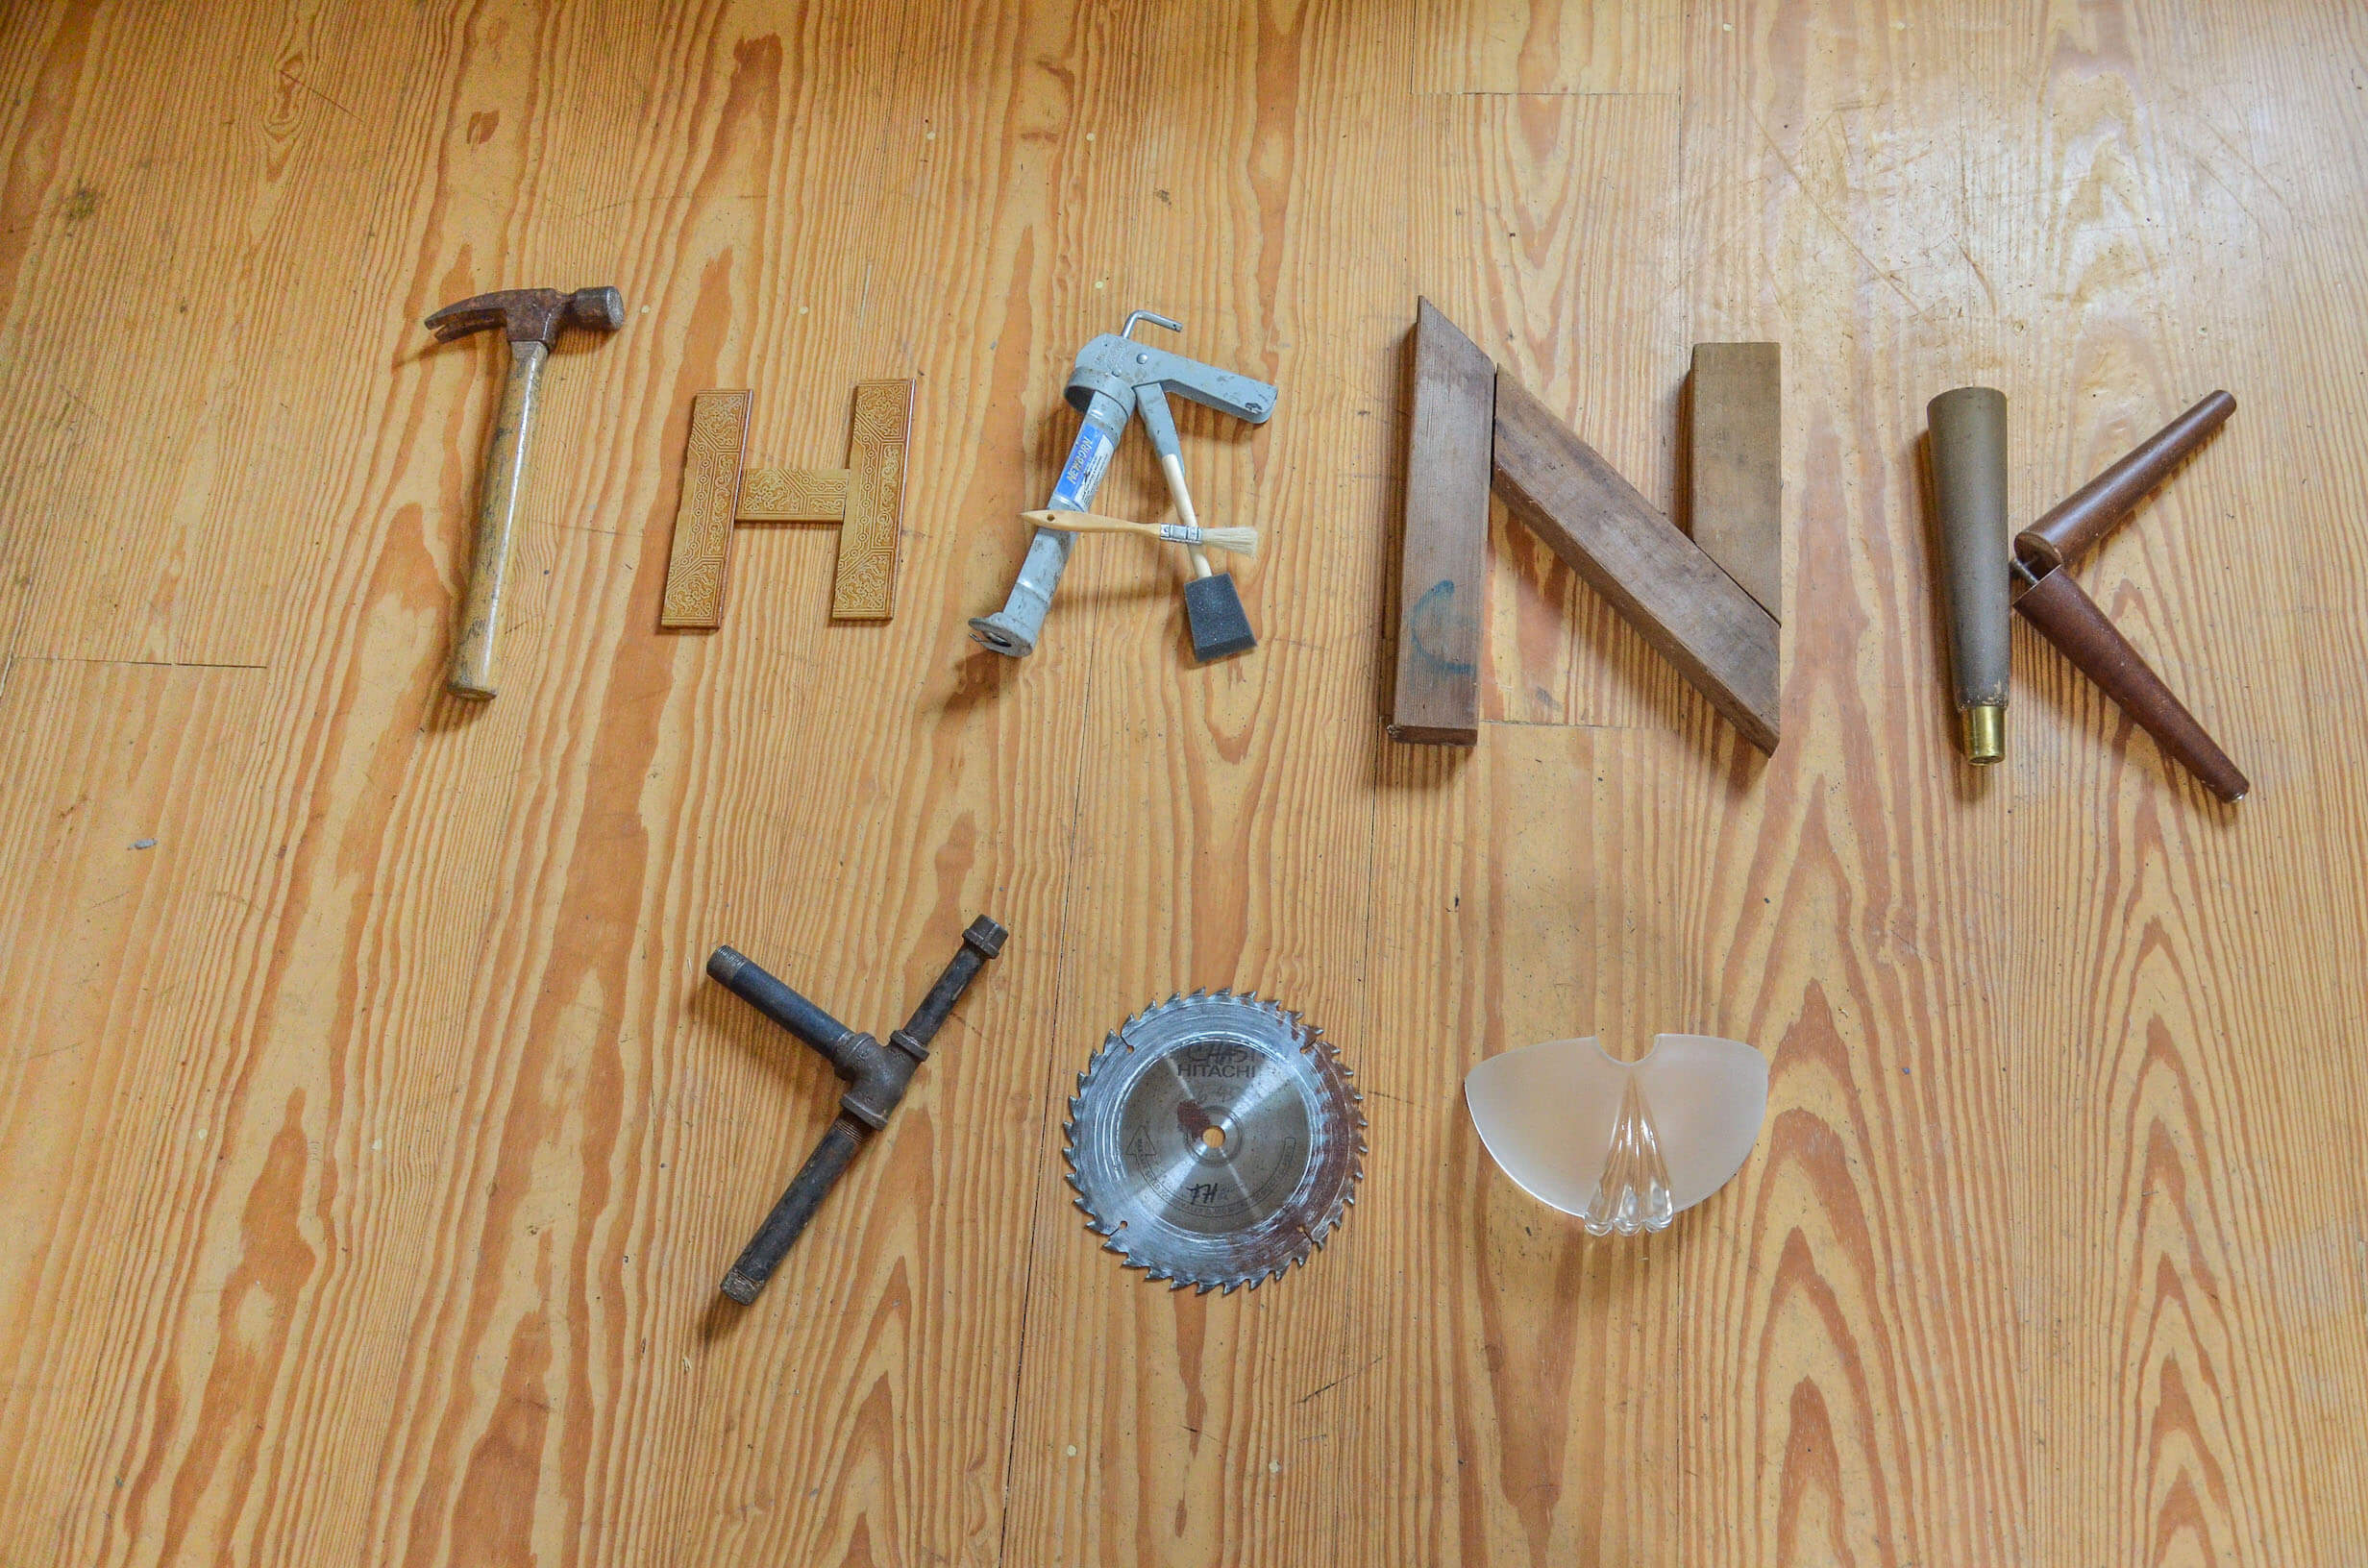 Reused materials arranged to spell thank you